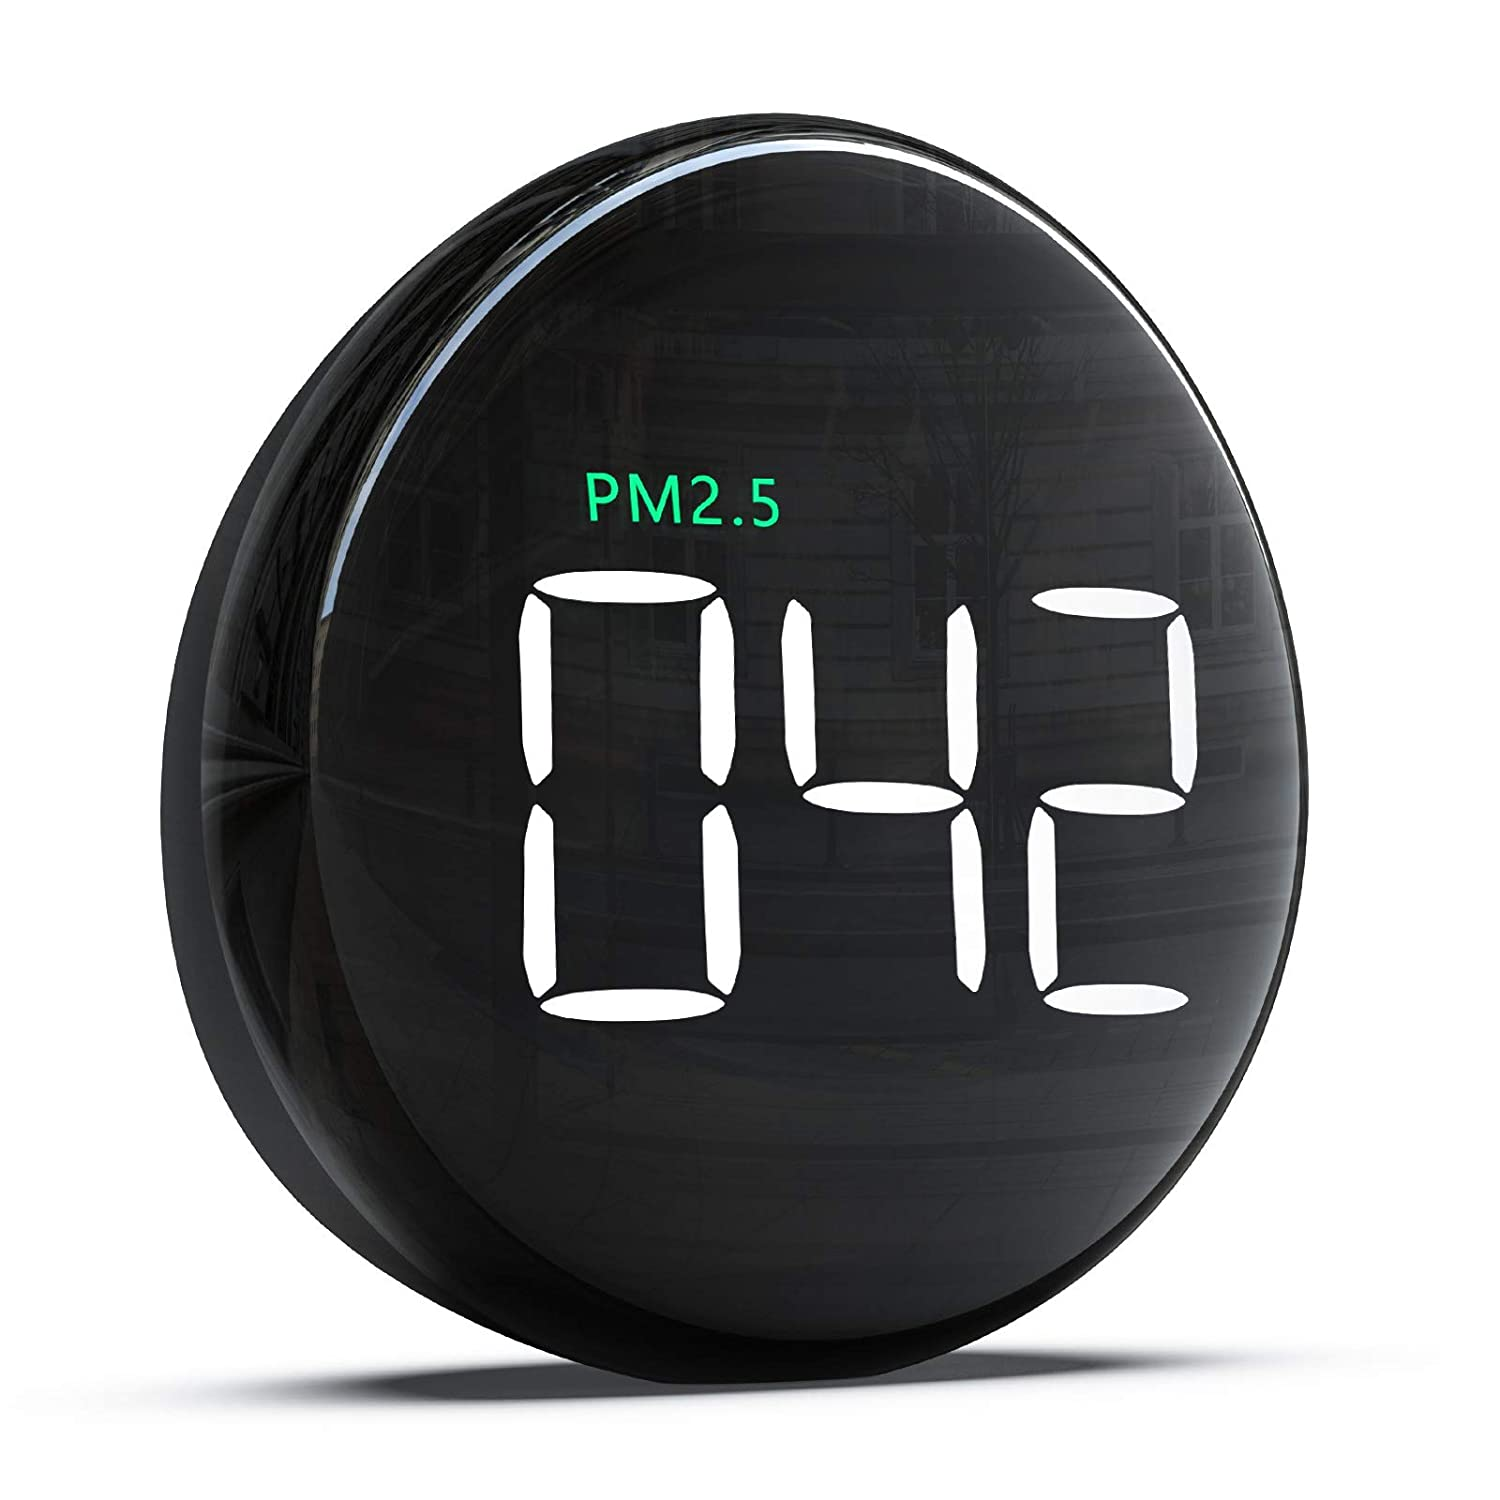 Air Quality Monitor Indoor & Outdoor for PM2.5 Particulate Matter, BAIVON Air Quality Tester Pollution Detector Meter for Home Office Car Travel Use